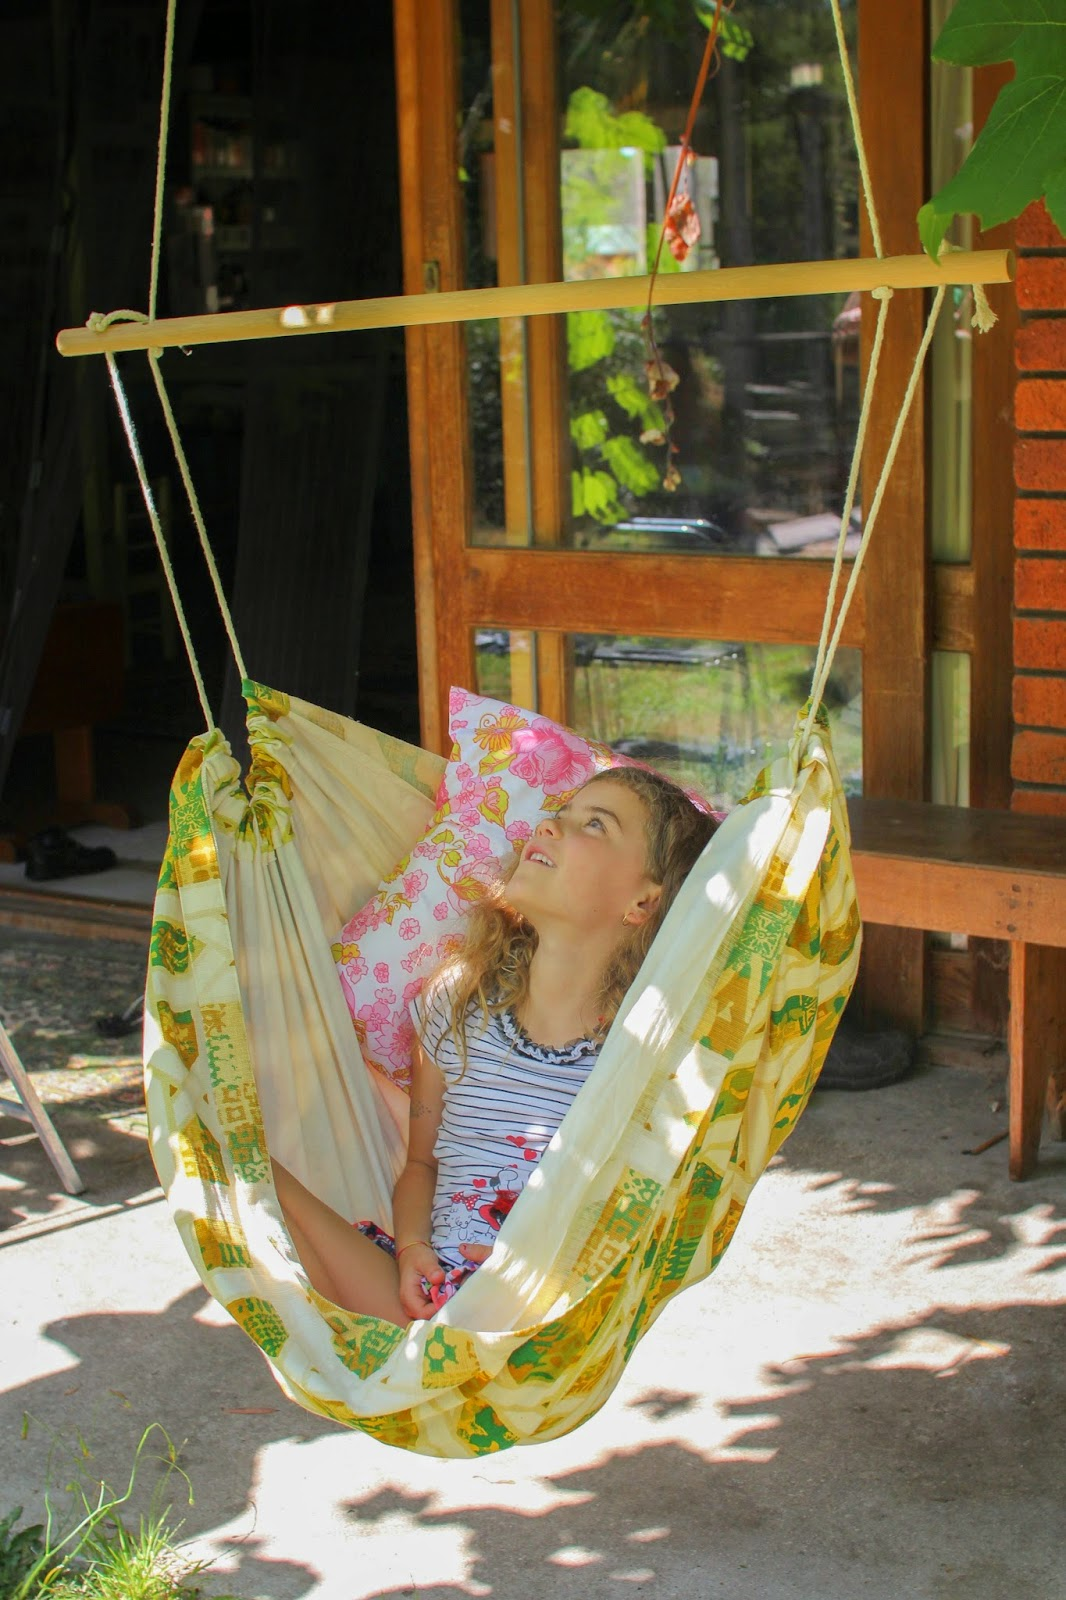 Diy Bedroom Hammock Chair Paris Bistro Chairs Outdoor How To Make A Swing